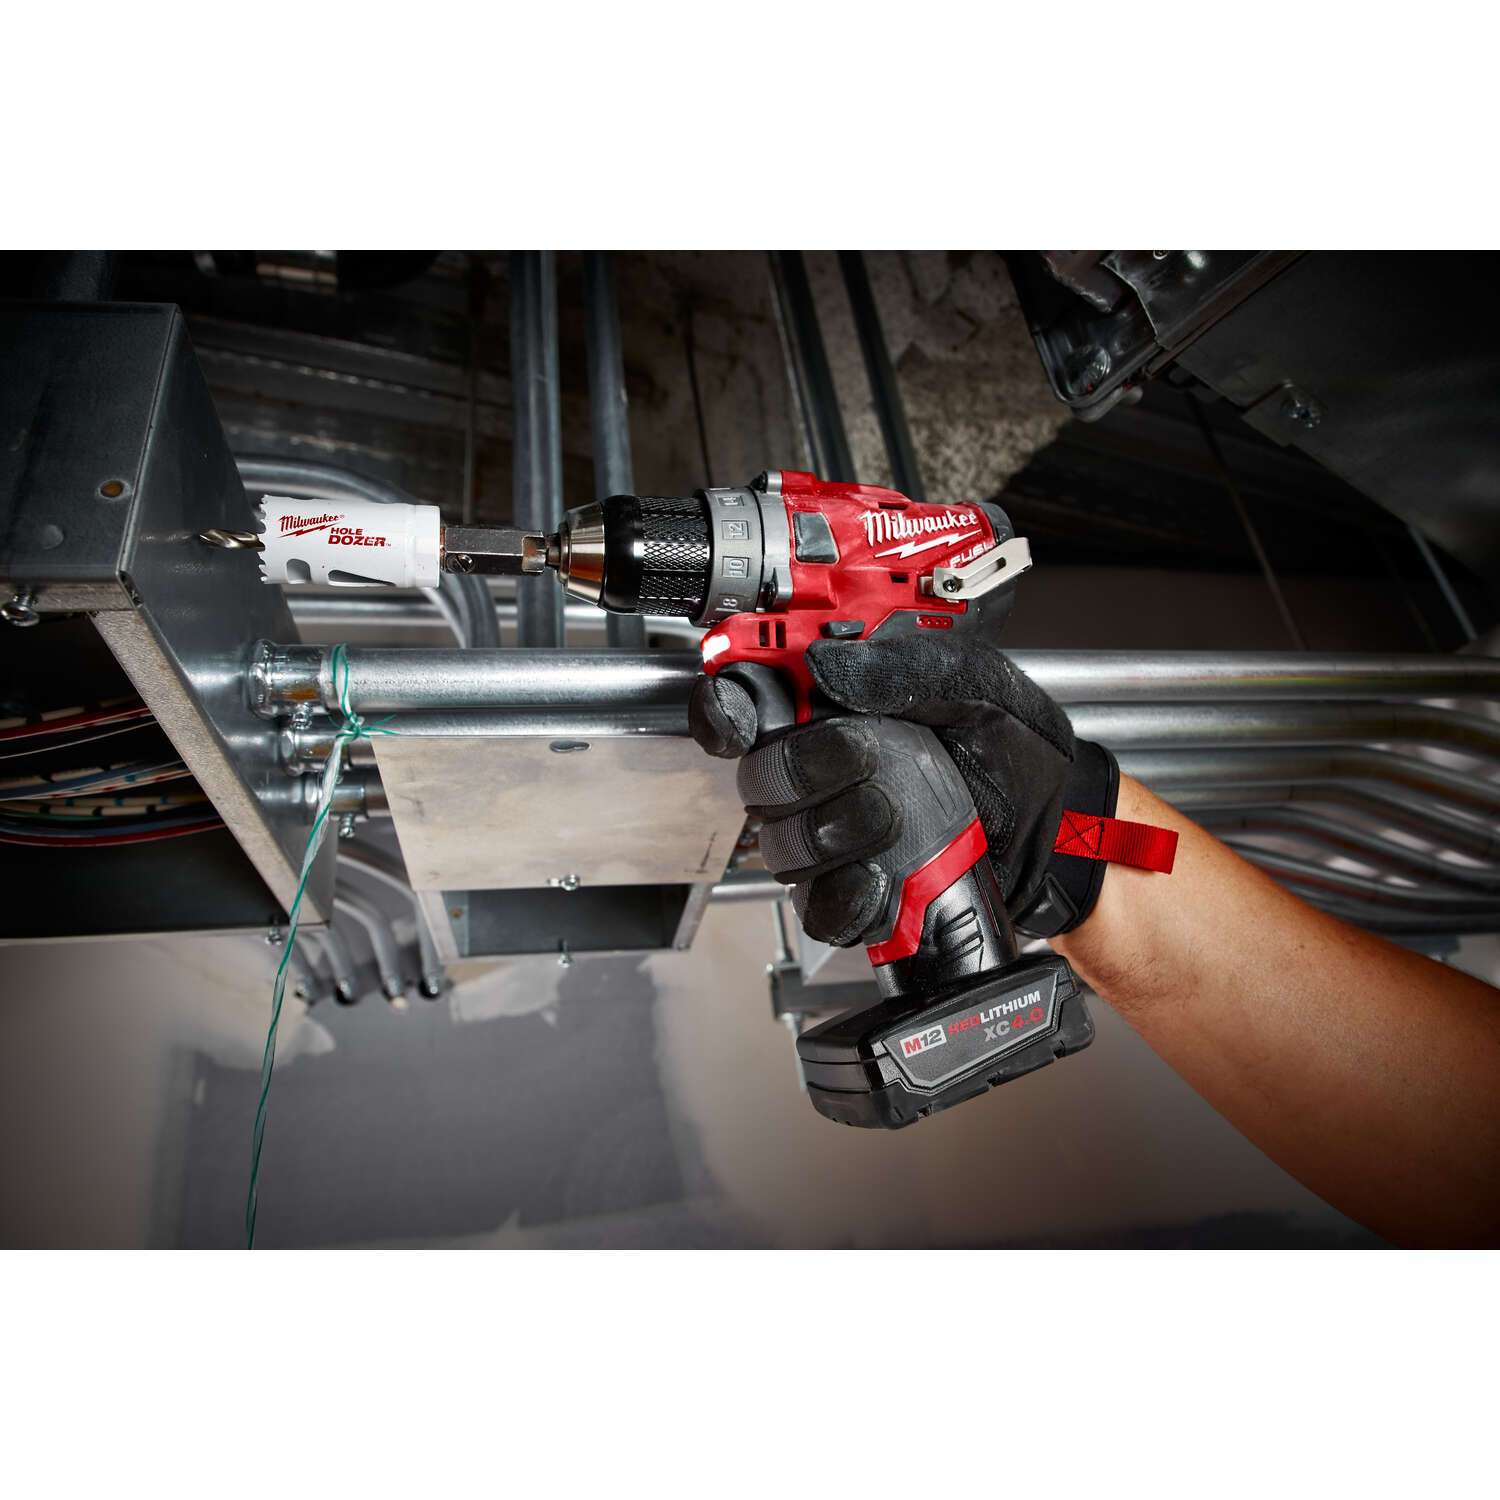 Milwaukee  M12 FUEL  12 volt 1/2 in. Brushless Cordless Drill/Driver  Kit 1700 rpm 2 speed